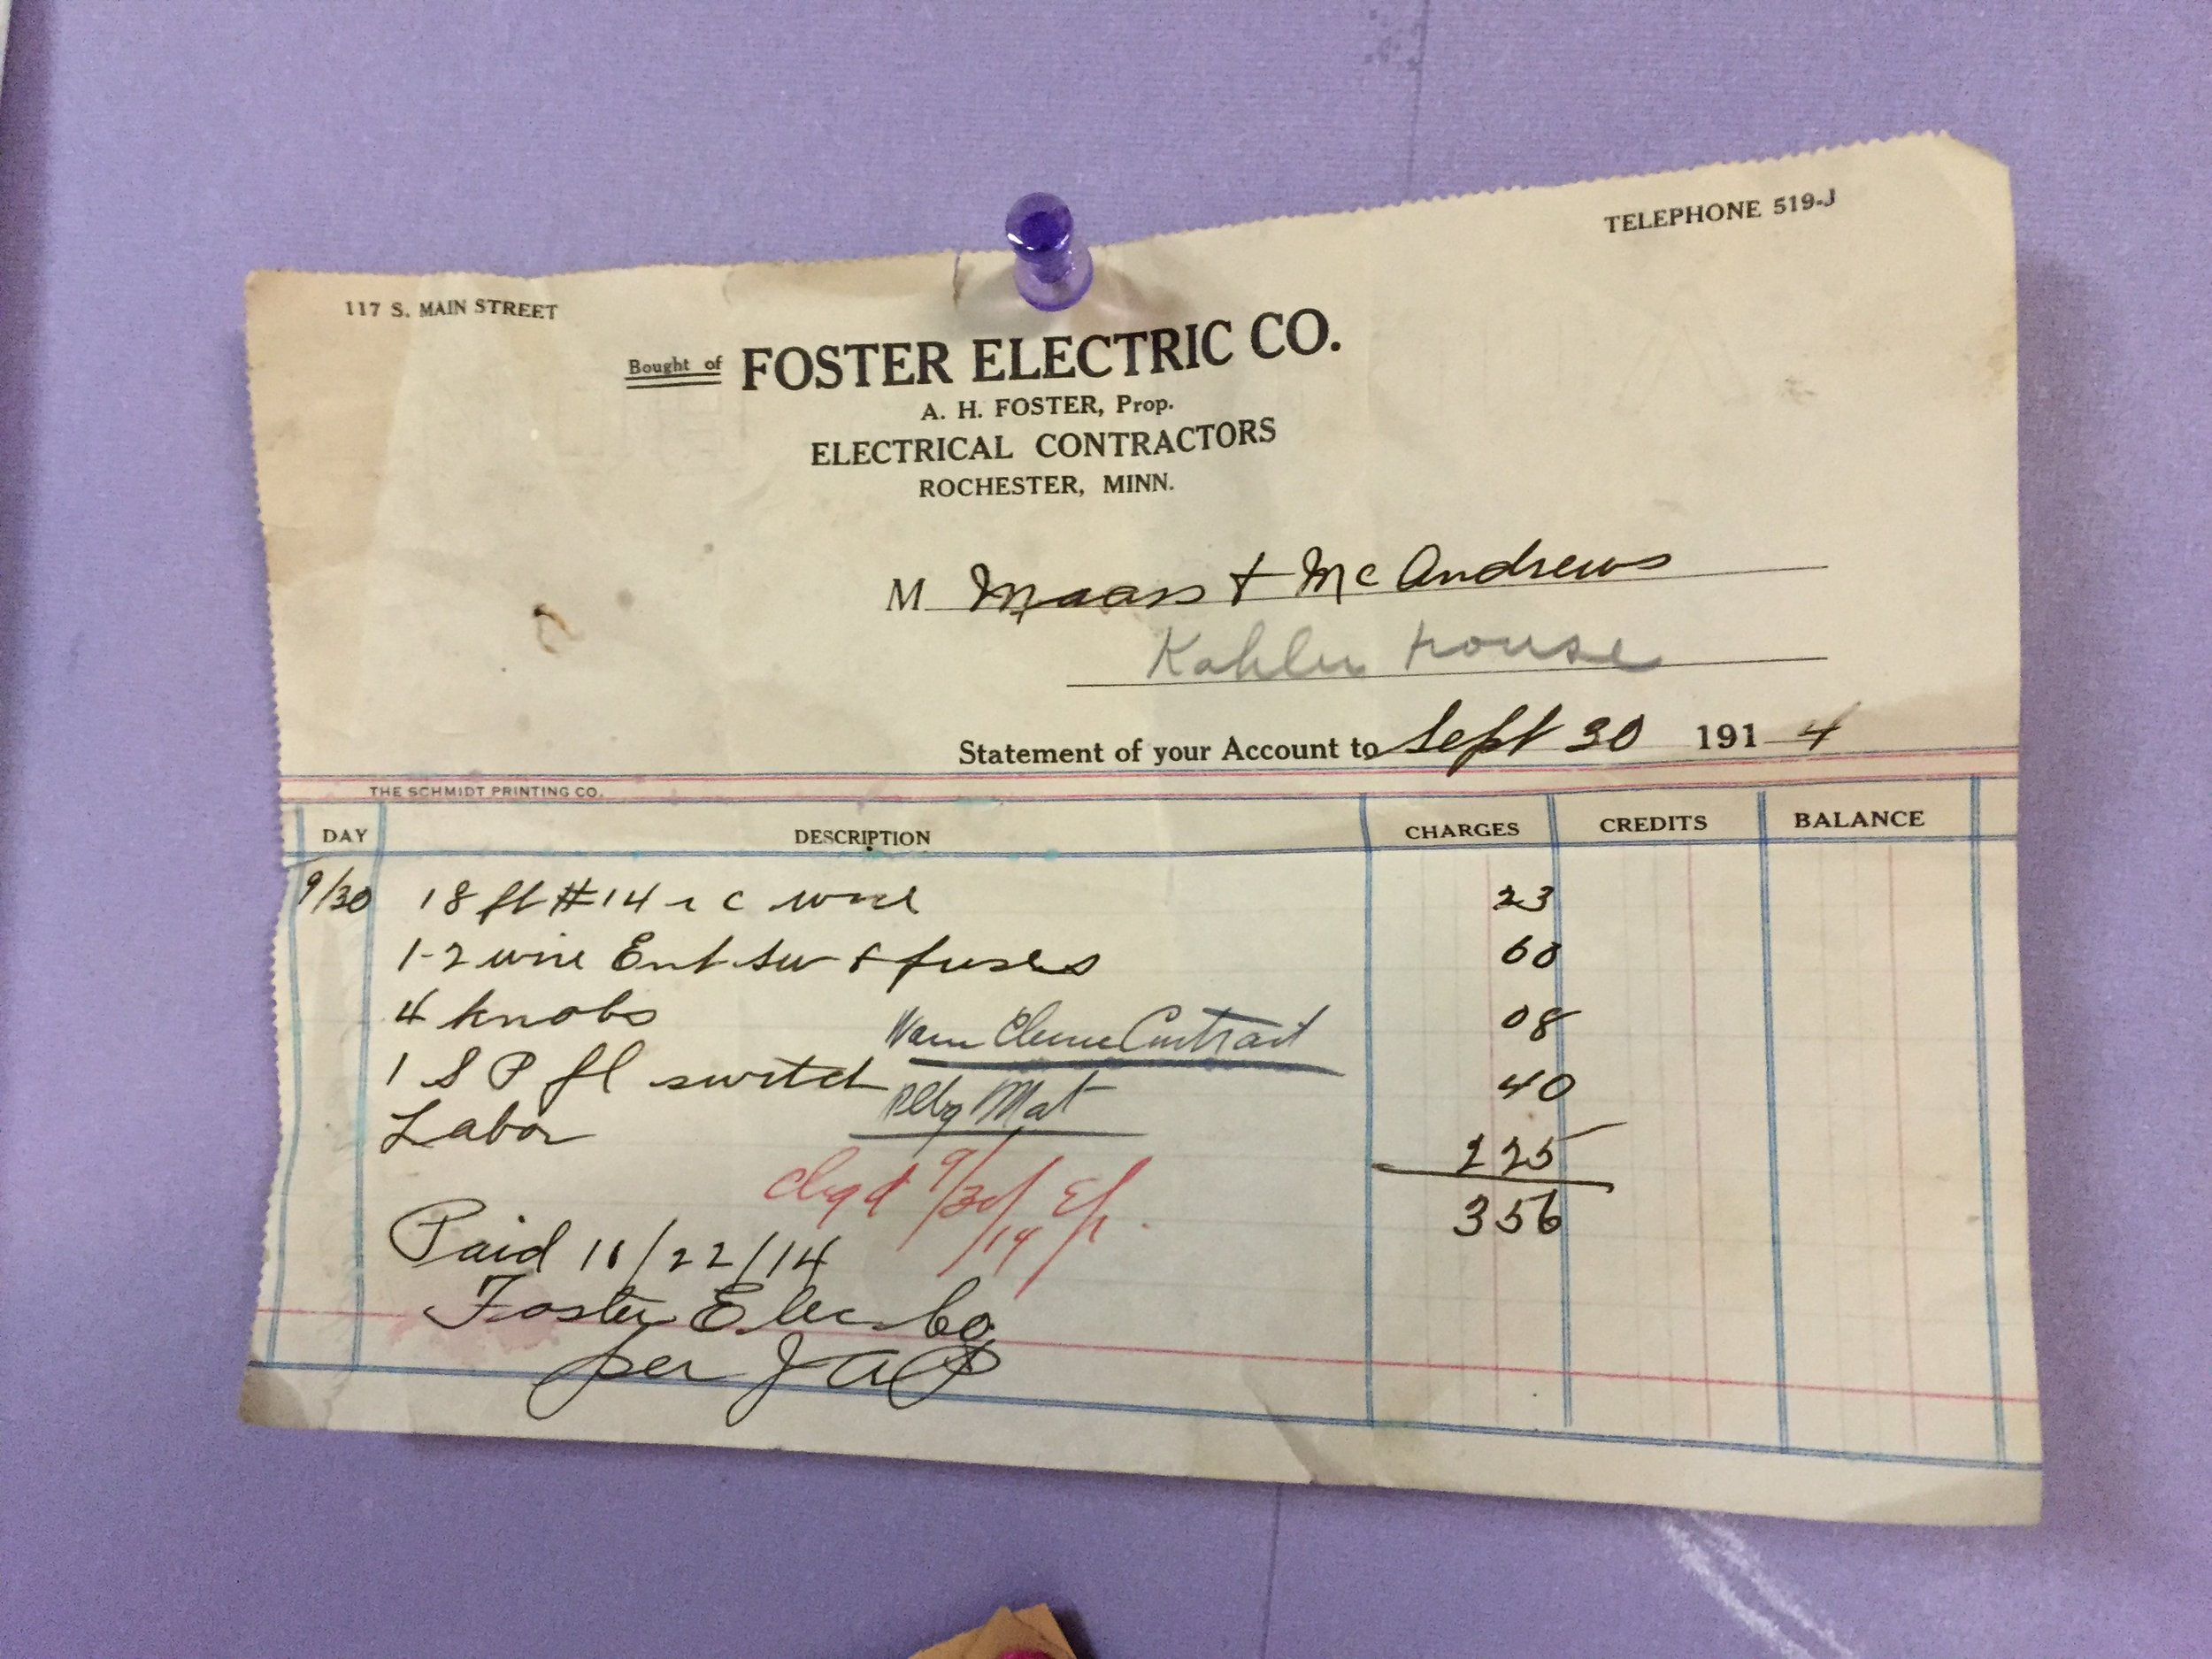 An original electrical bill from Sept. 30th, 14. That's 1914.